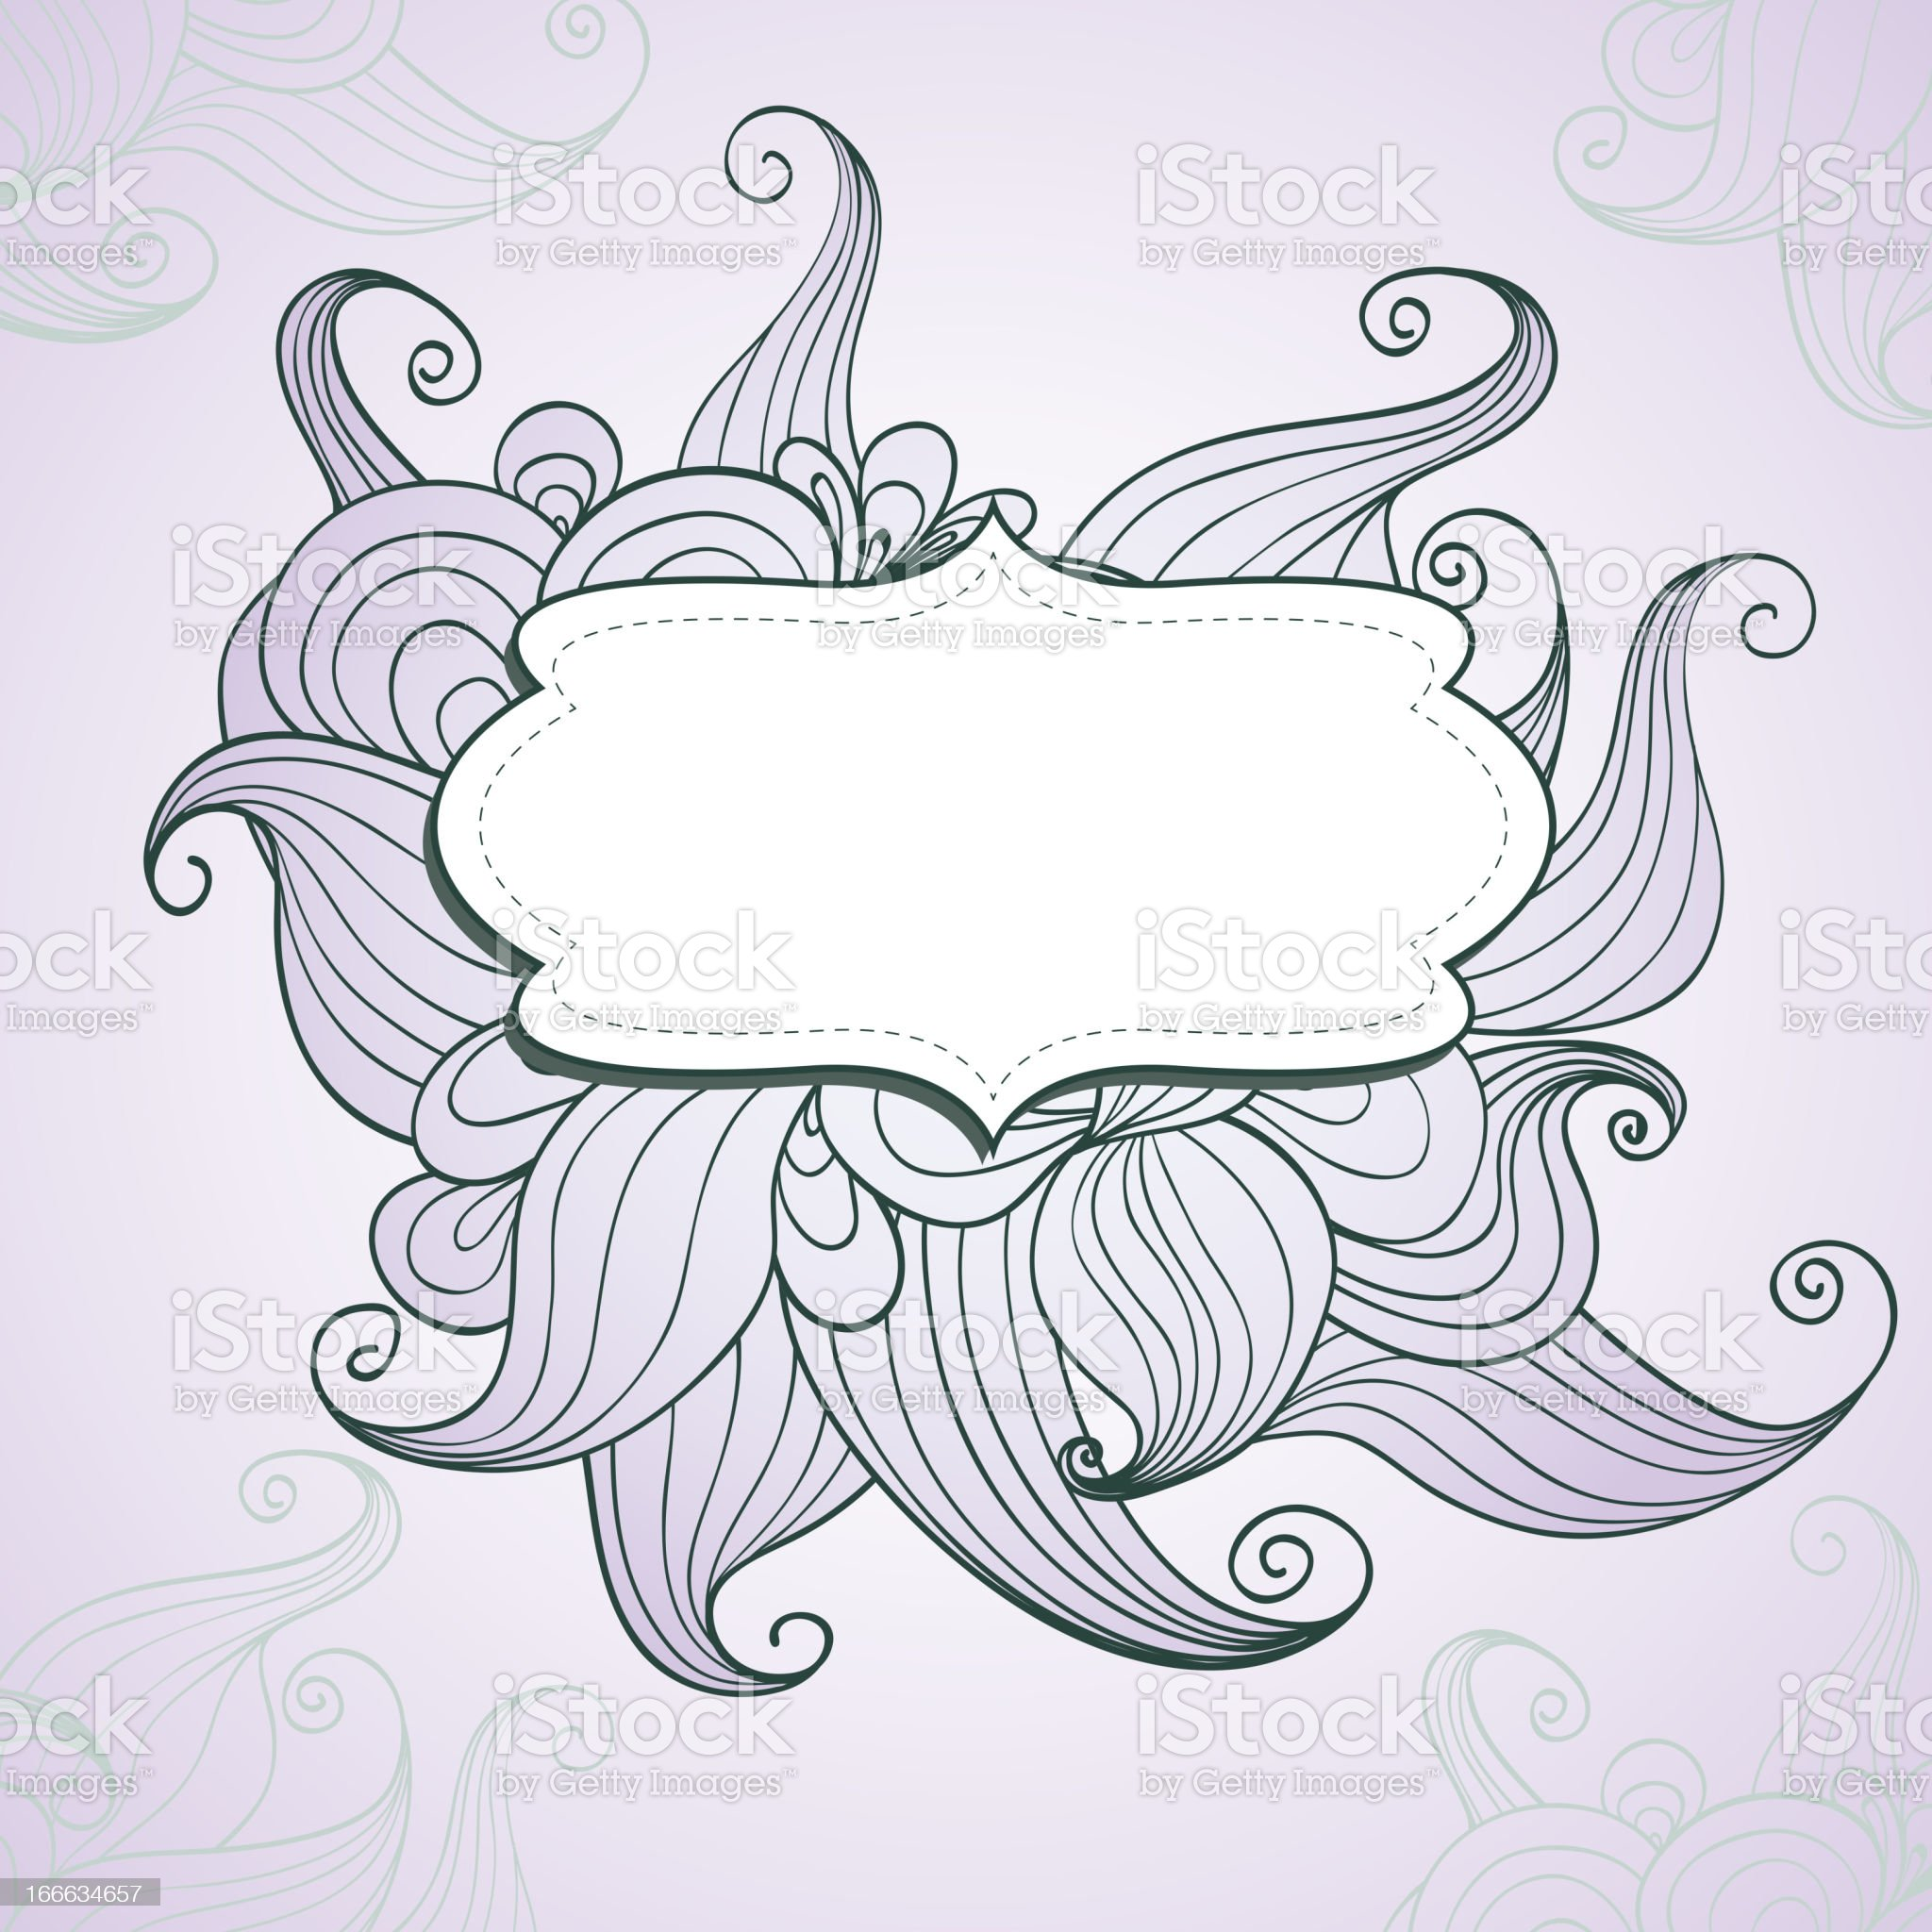 Decorative background with hand drawn waves royalty-free stock vector art